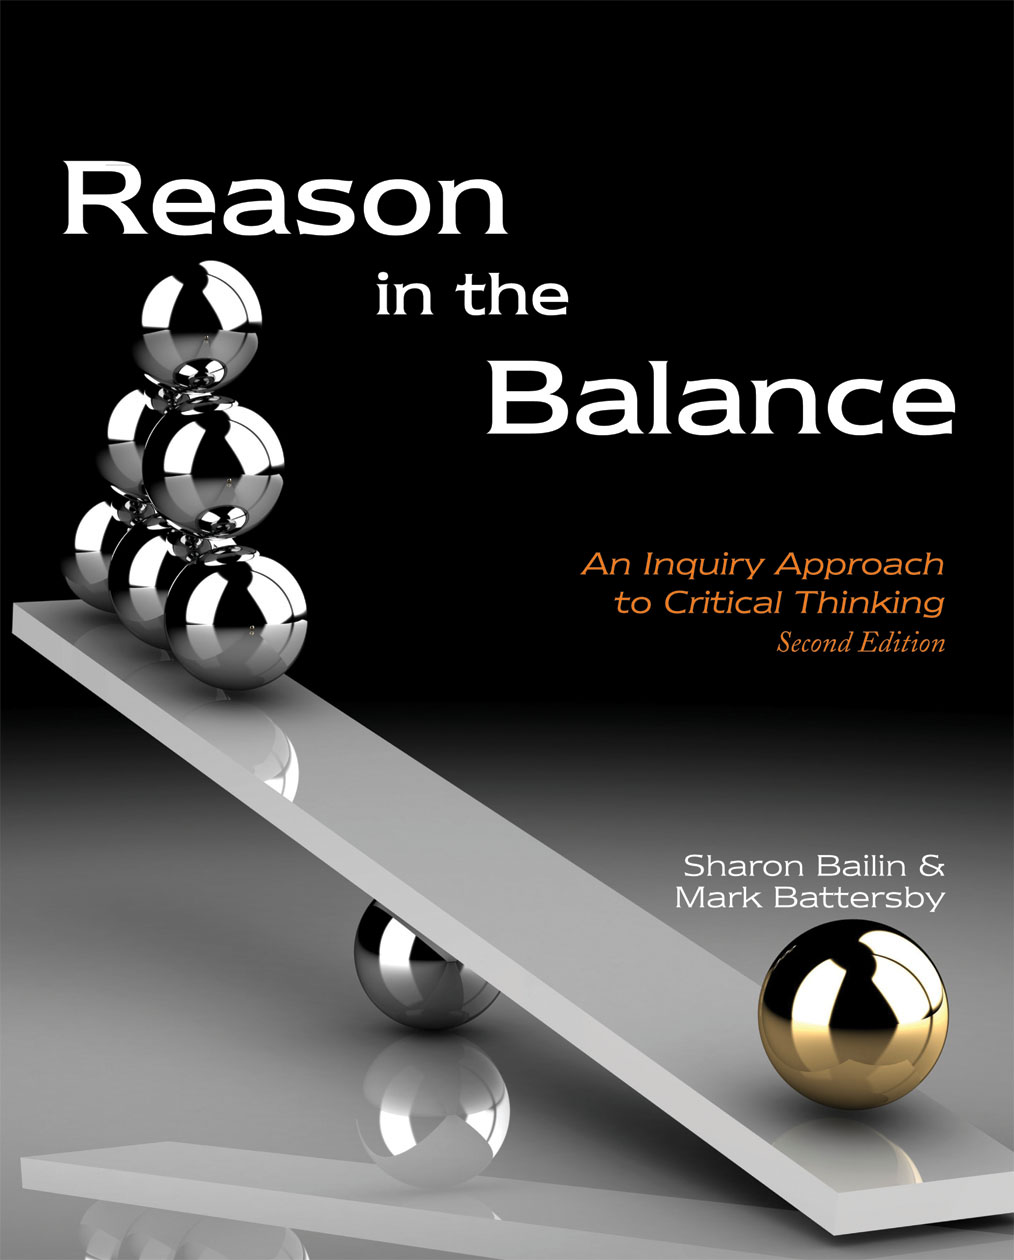 reason in the balance bailin battersby pdf second edition